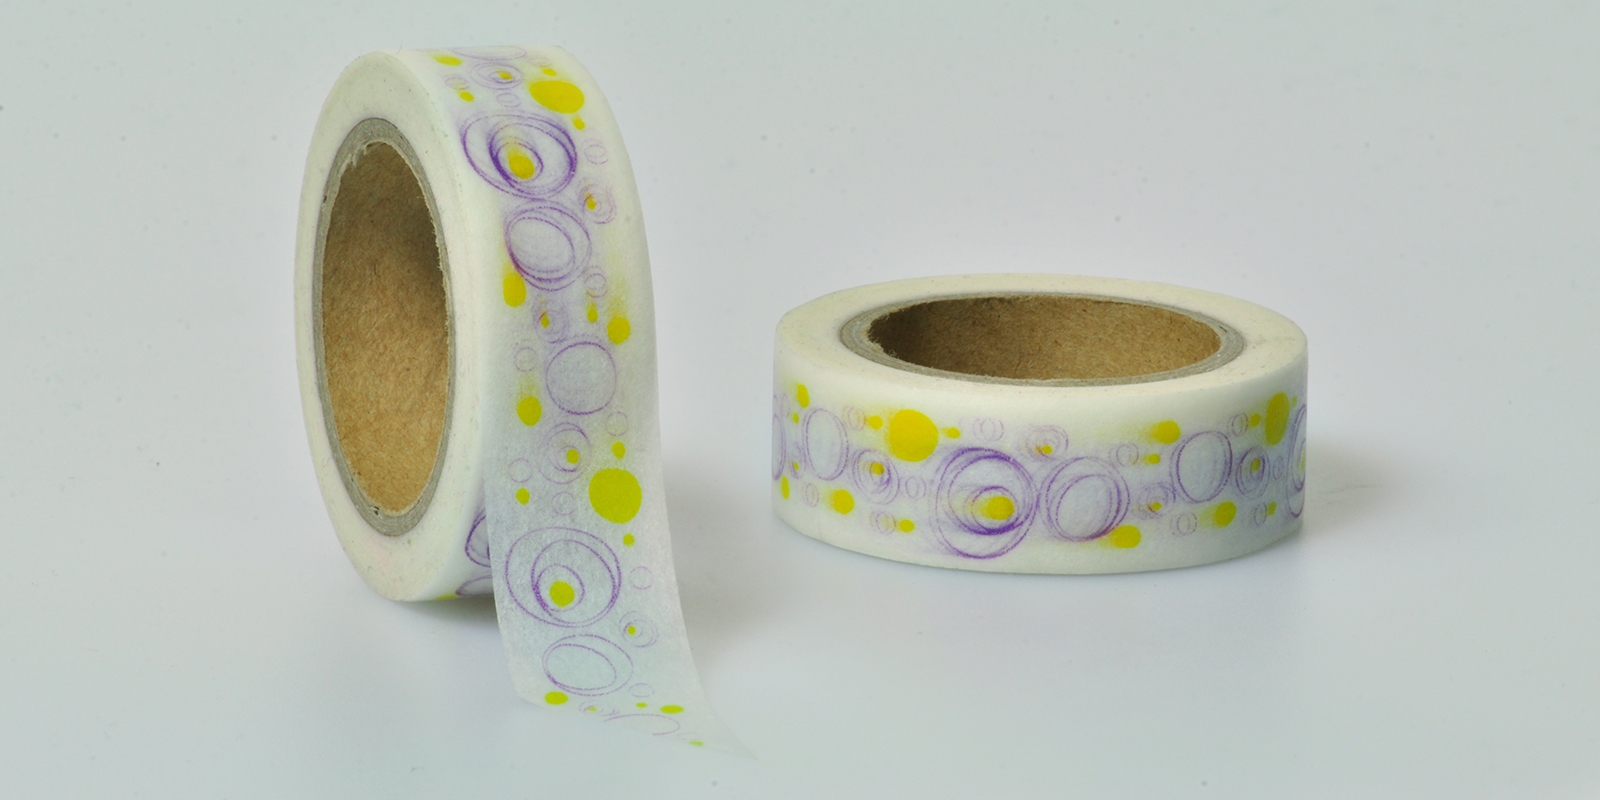 Washi Tape muster weiß